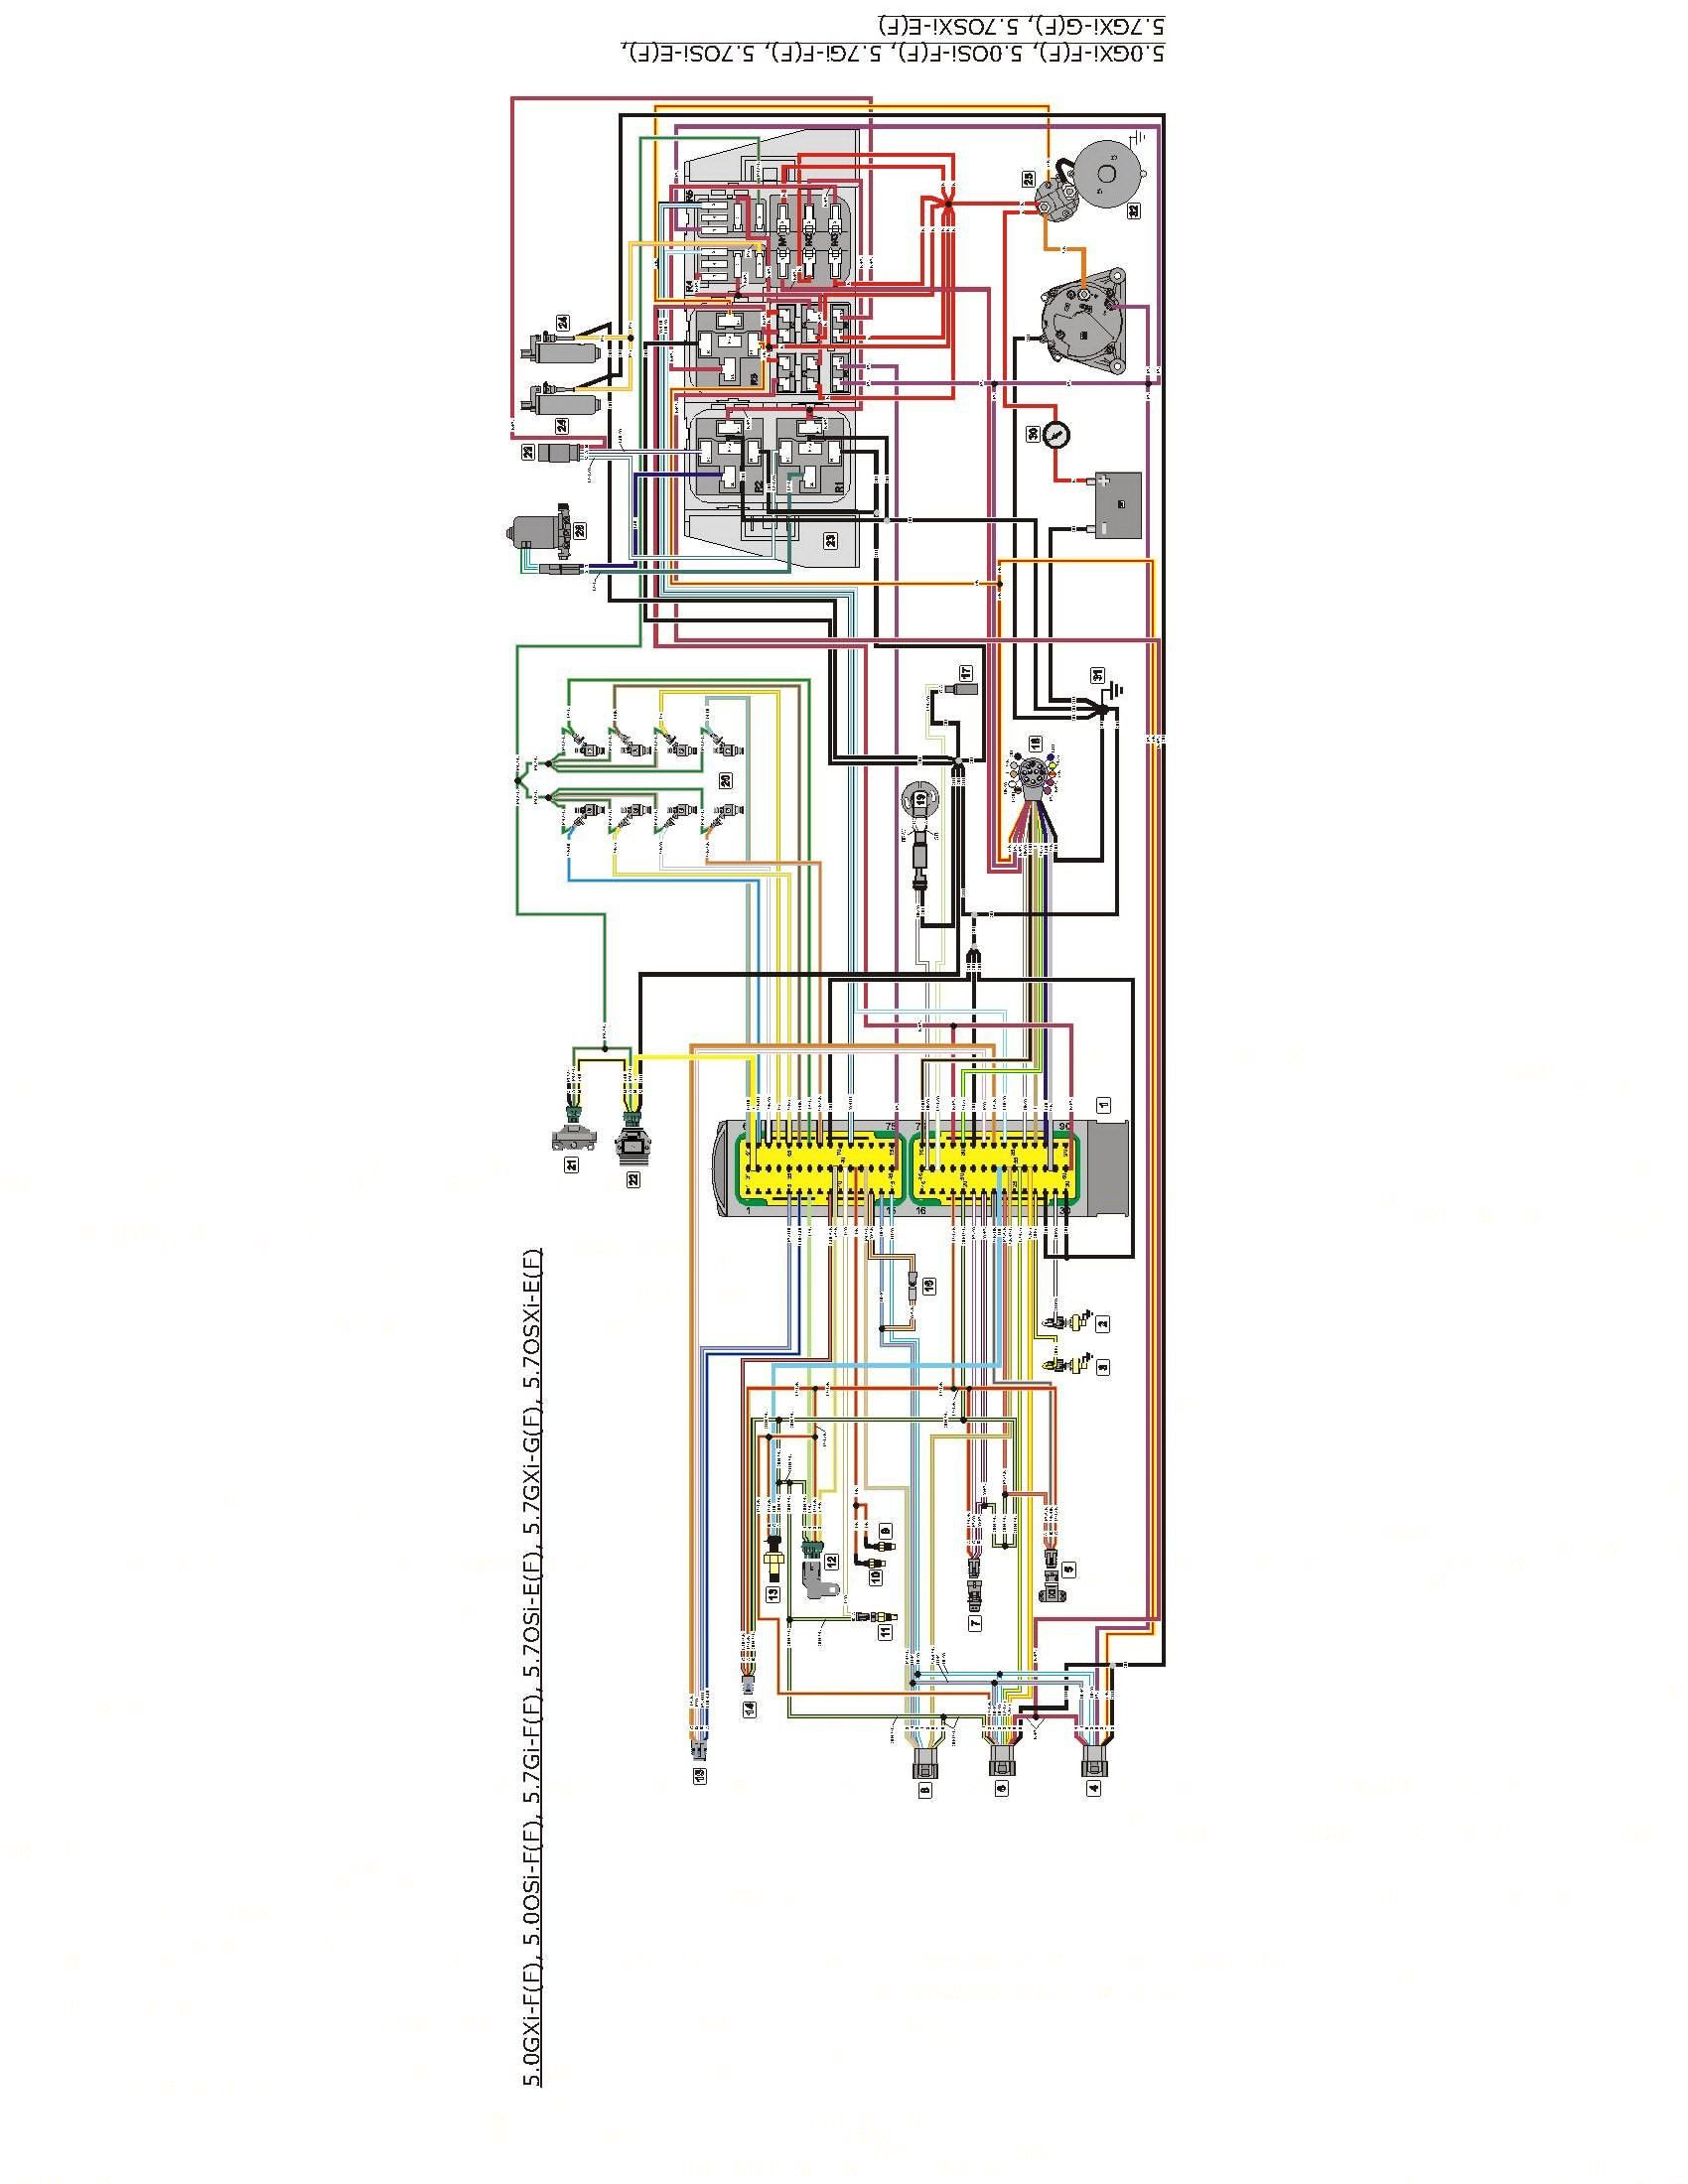 mercury outboard power trim wiring diagram lovely wiring diagram for Volvo Penta Engine Specifications